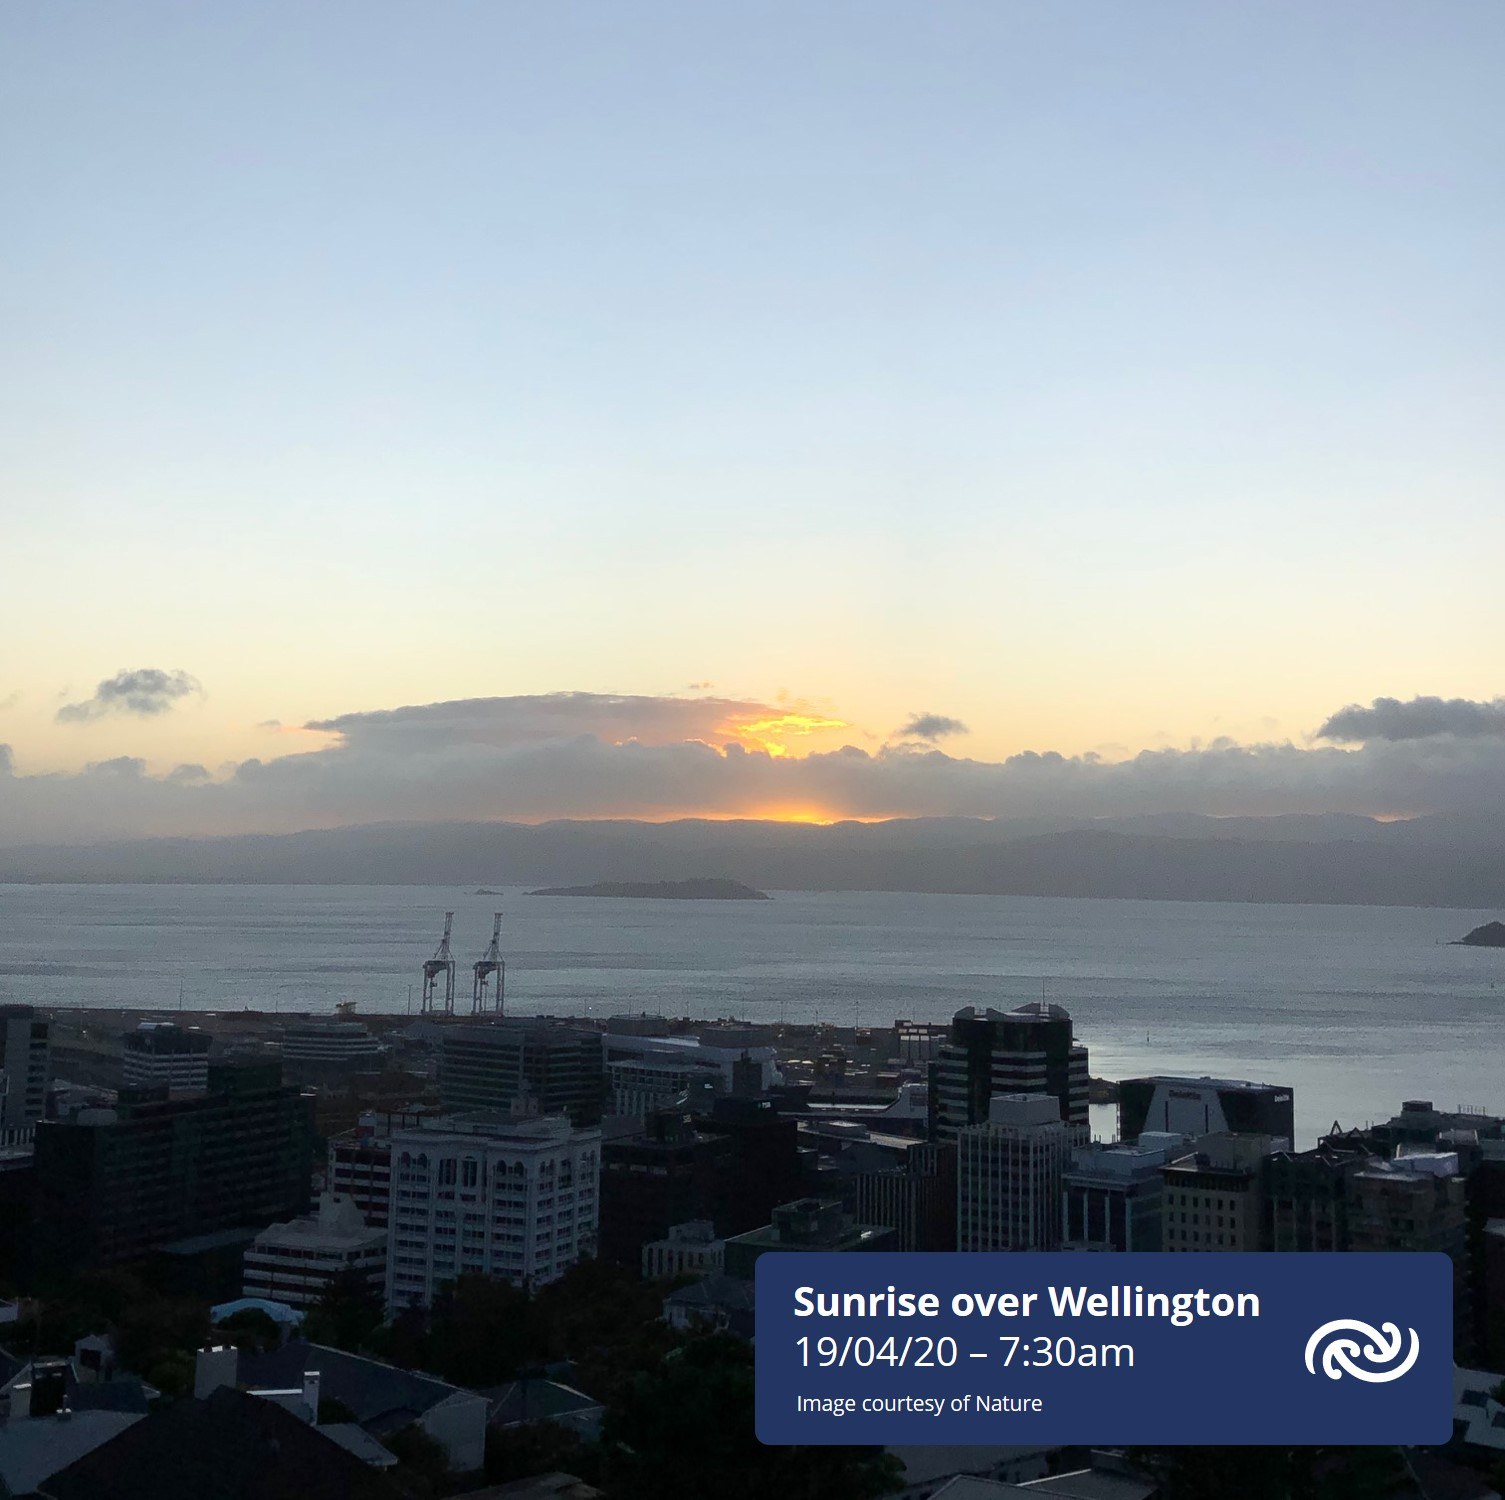 Morning Wellington  Clear skies over the city this morning are set to continue with a fine, albeit gusty day forecast. Christchurch & Auckland will also see plenty of sun though Auckland is expected to see one or two showers this afternoon or evening. More at metservice,com ^AC https://t.co/JmqAgukF3y